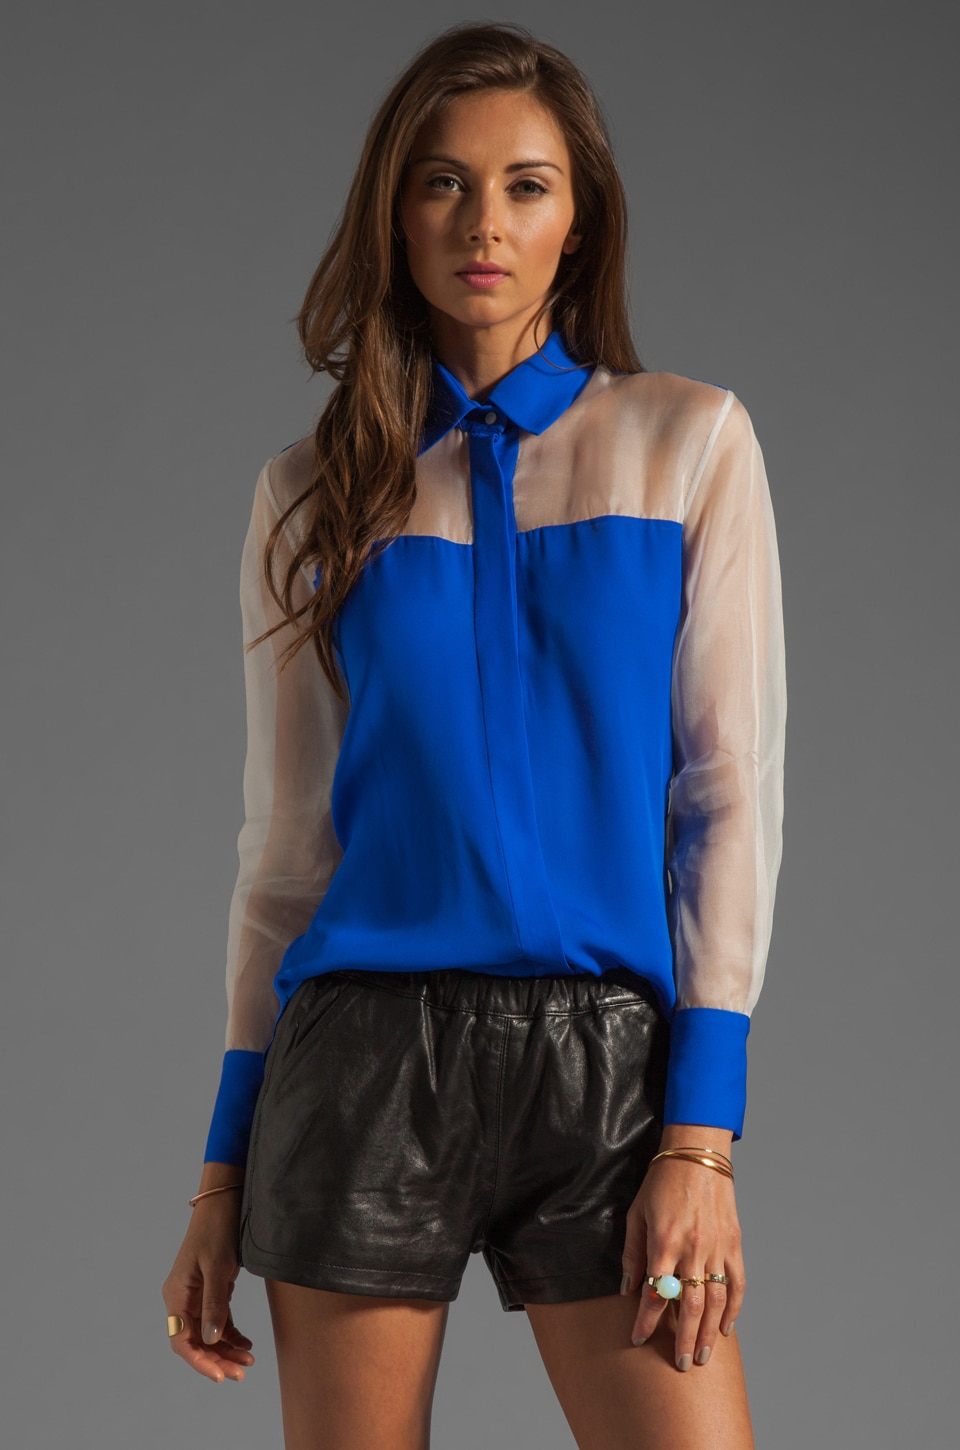 MAX FOWLES Silk Blouse in Blue/White